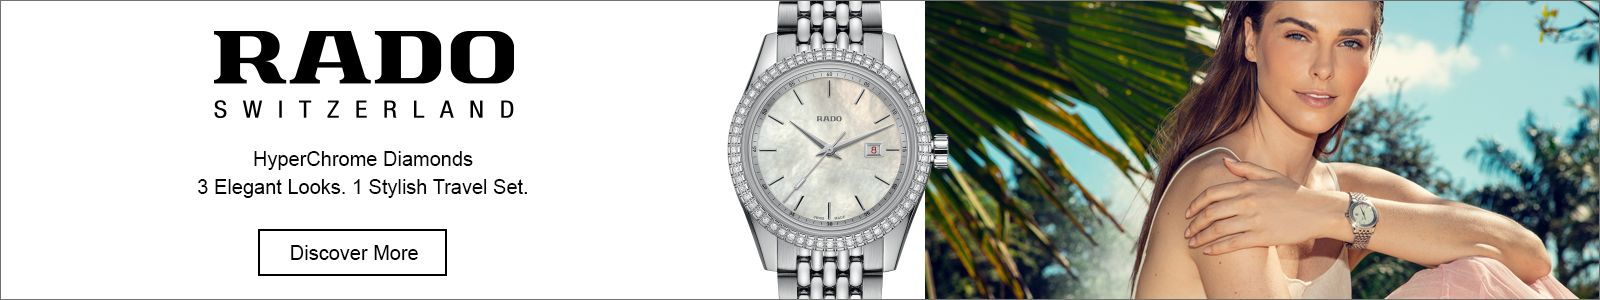 Rado, Switzerland, hyperchhrome Diamonds, 3 elegant Looks, 1 Stylish Travel set, Discover More